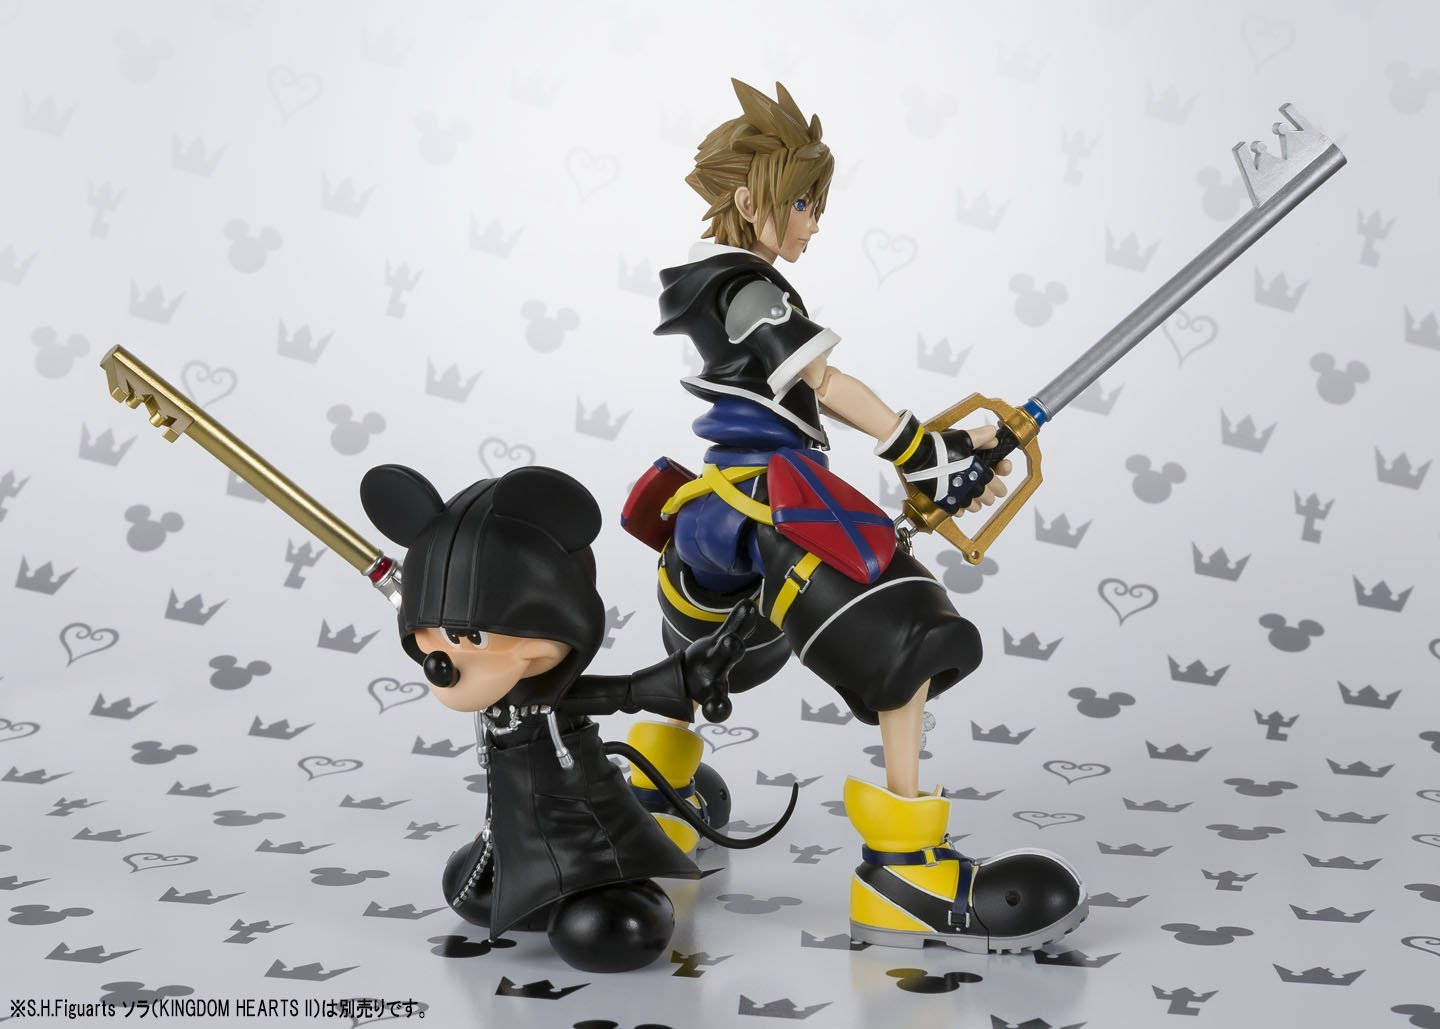 SH Figuarts Kingdom Hearts Mickey Mouse and Sora are Amazon Exclusives - The Toyark - News